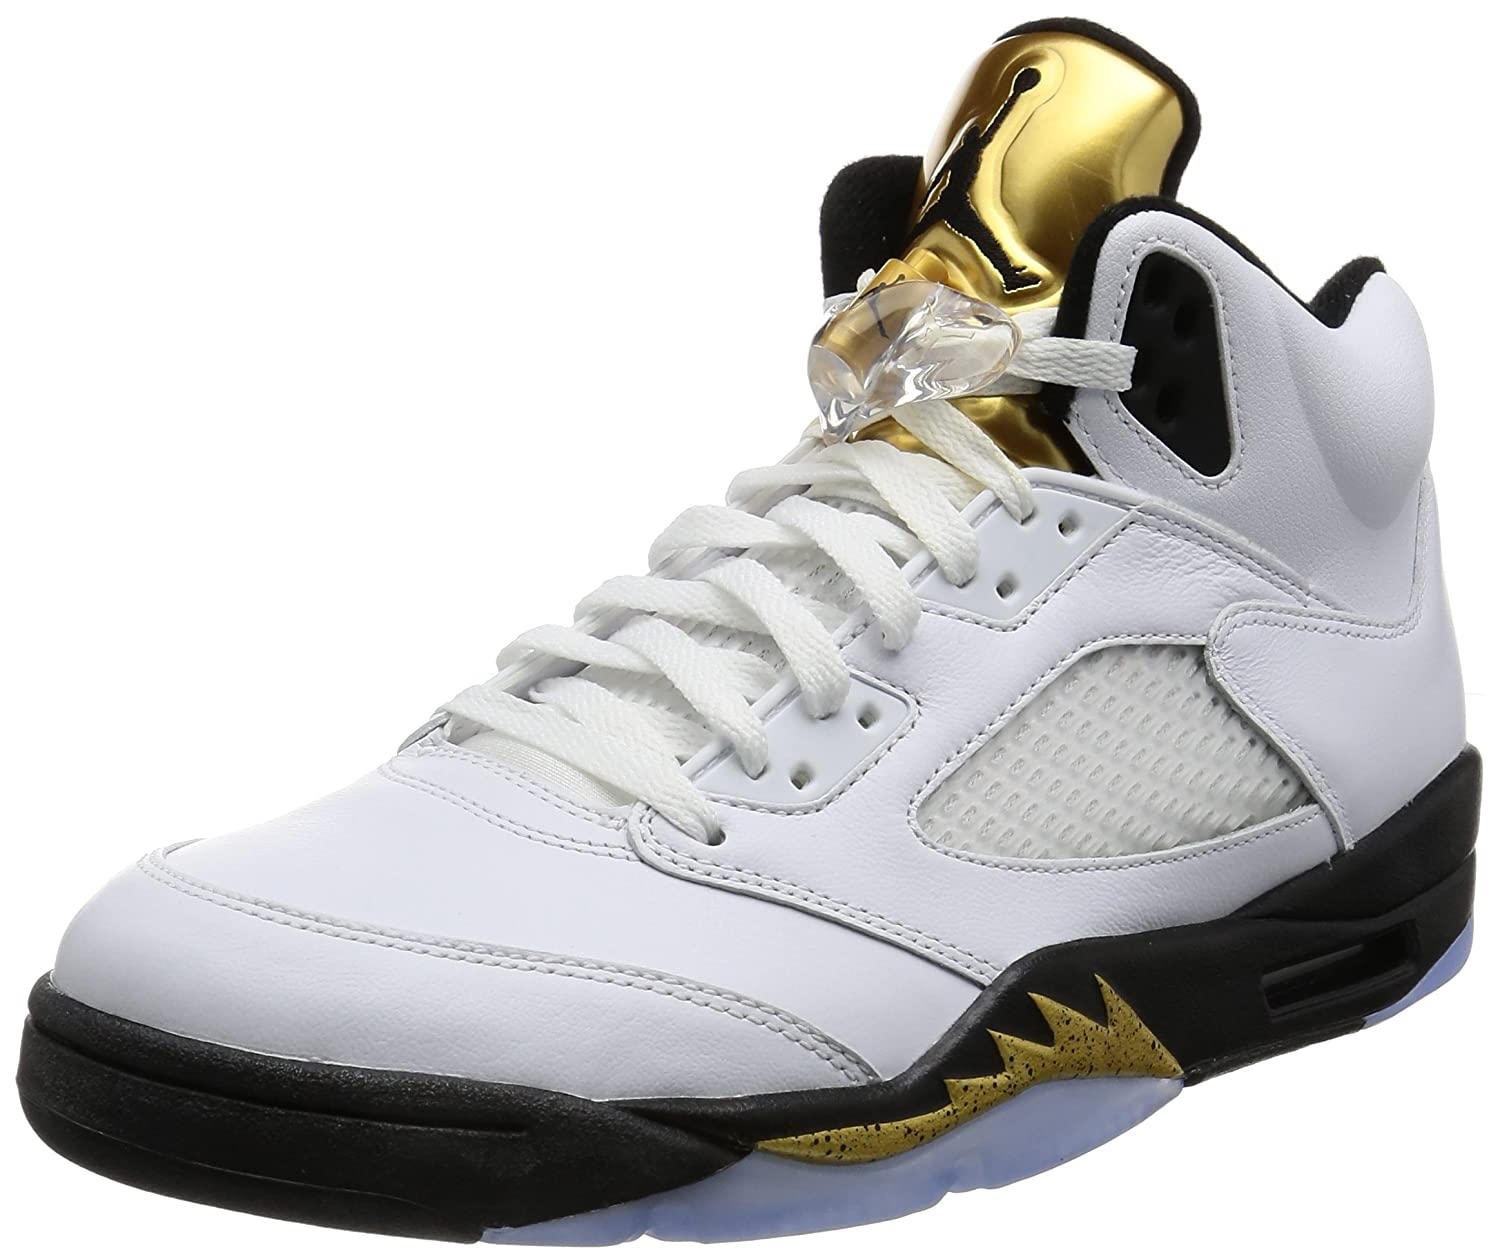 meet 5fc47 c3180 Nike Mens Air Jordan 5 Retro Olympic White/Black-Metallic Gold Leather Size  10.5